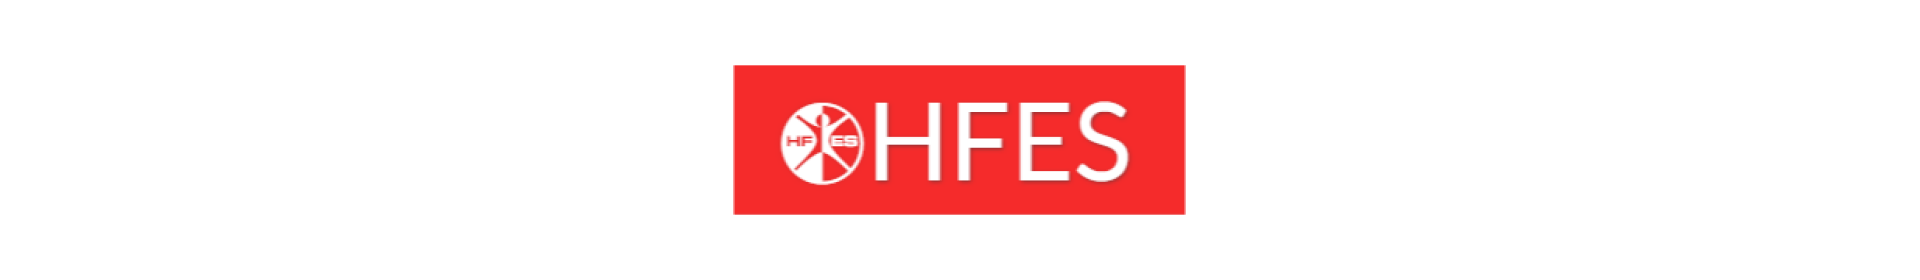 HFES 64th International Annual Meeting 2020 Event Banner